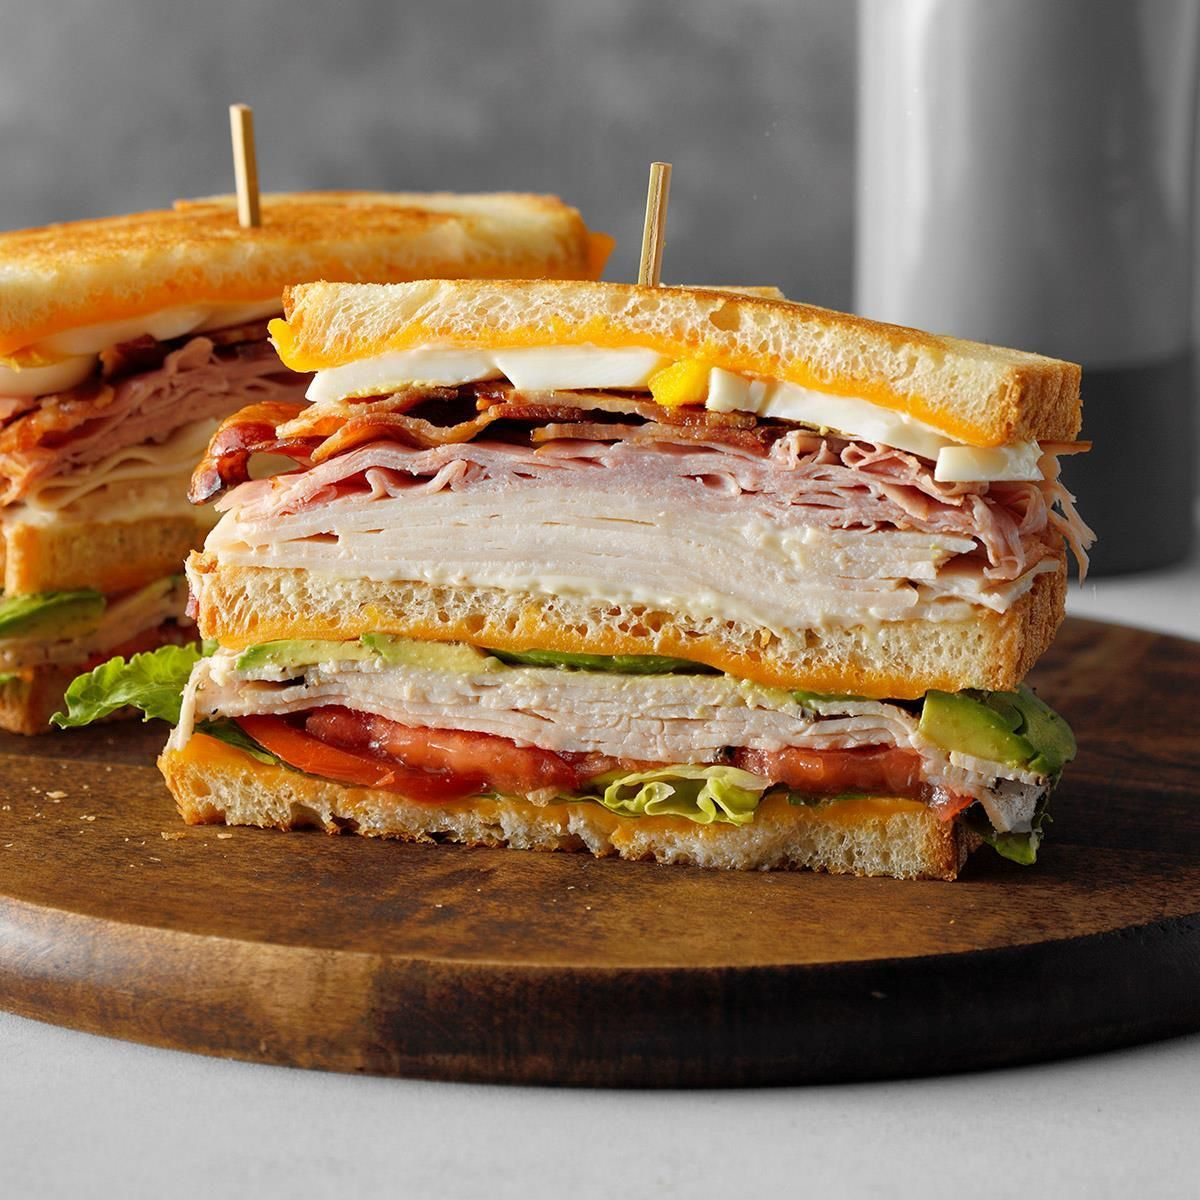 The Most Popular Sandwiches From Every Decade